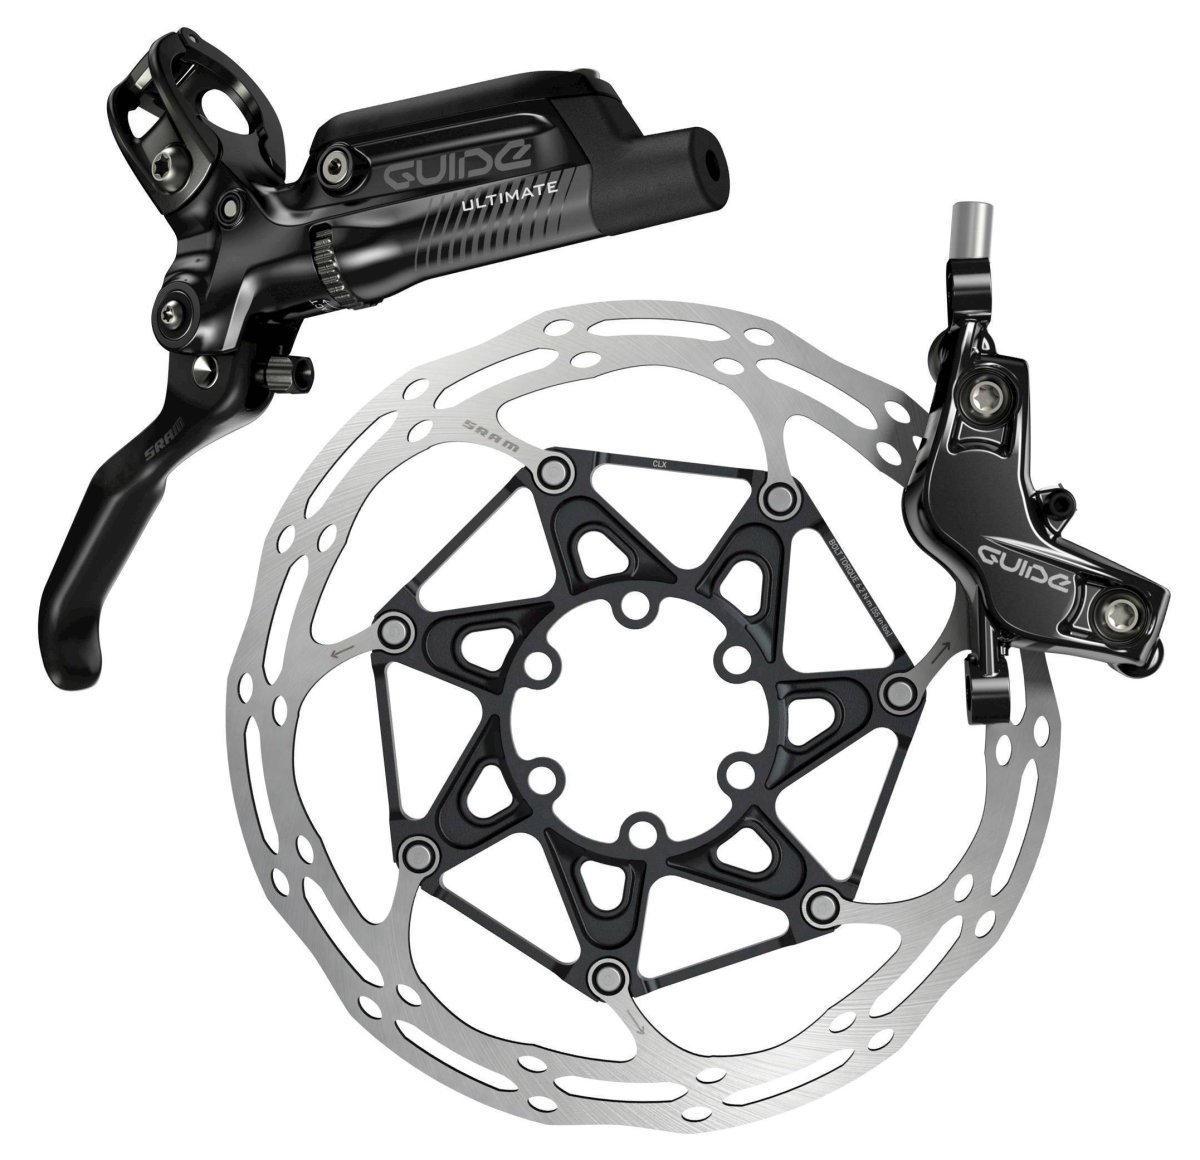 Ротор Sram CNTRLN 2P BLACK ST ROUNDED 140 мм 2 CNTRLN 2P 140MM BLACK ST ROUNDED 00.5018.037.016